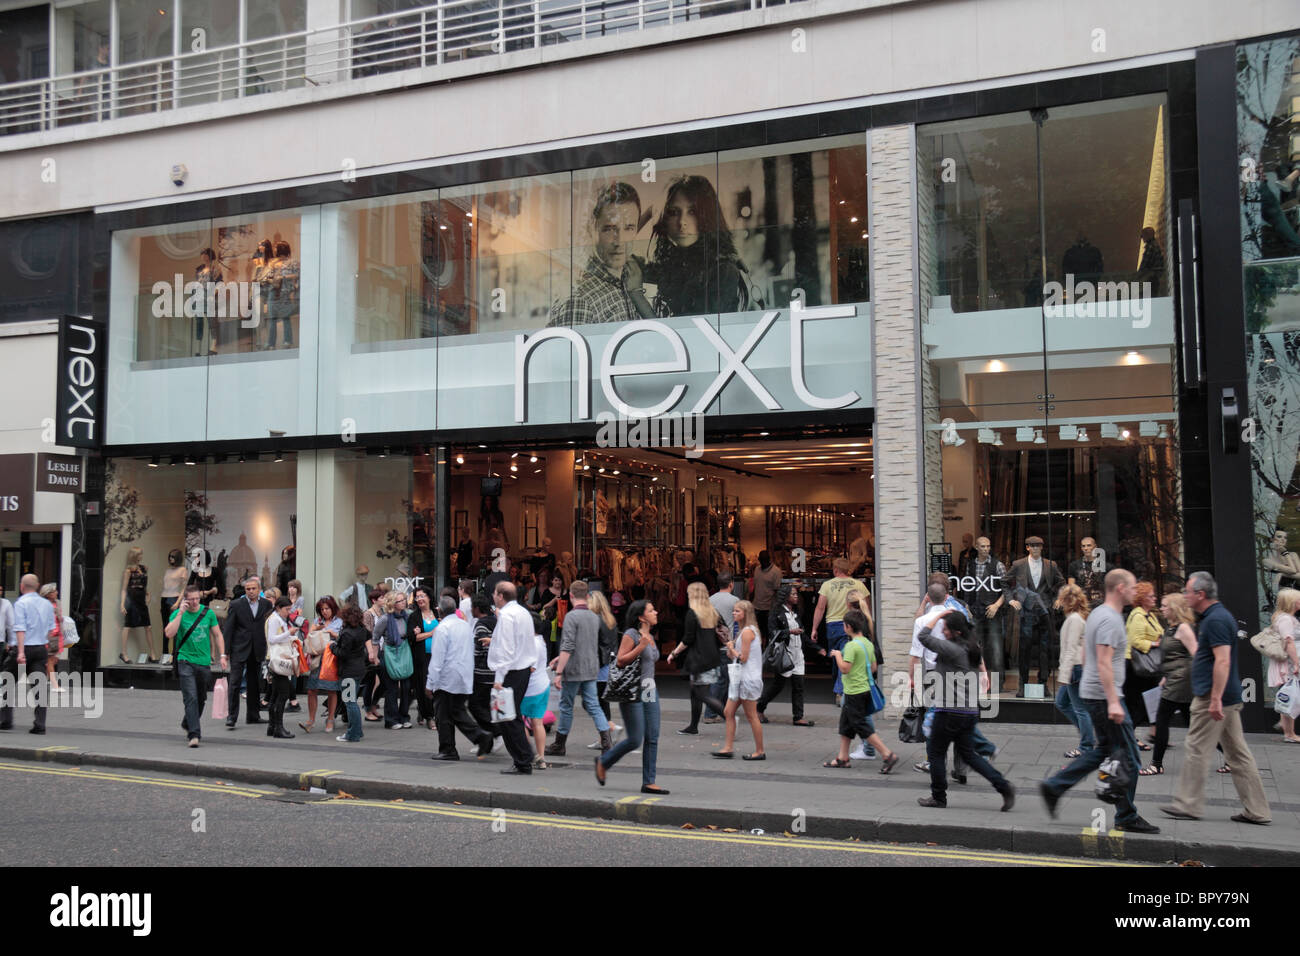 50 Things College Students Should Know About London Fashion college london oxford street